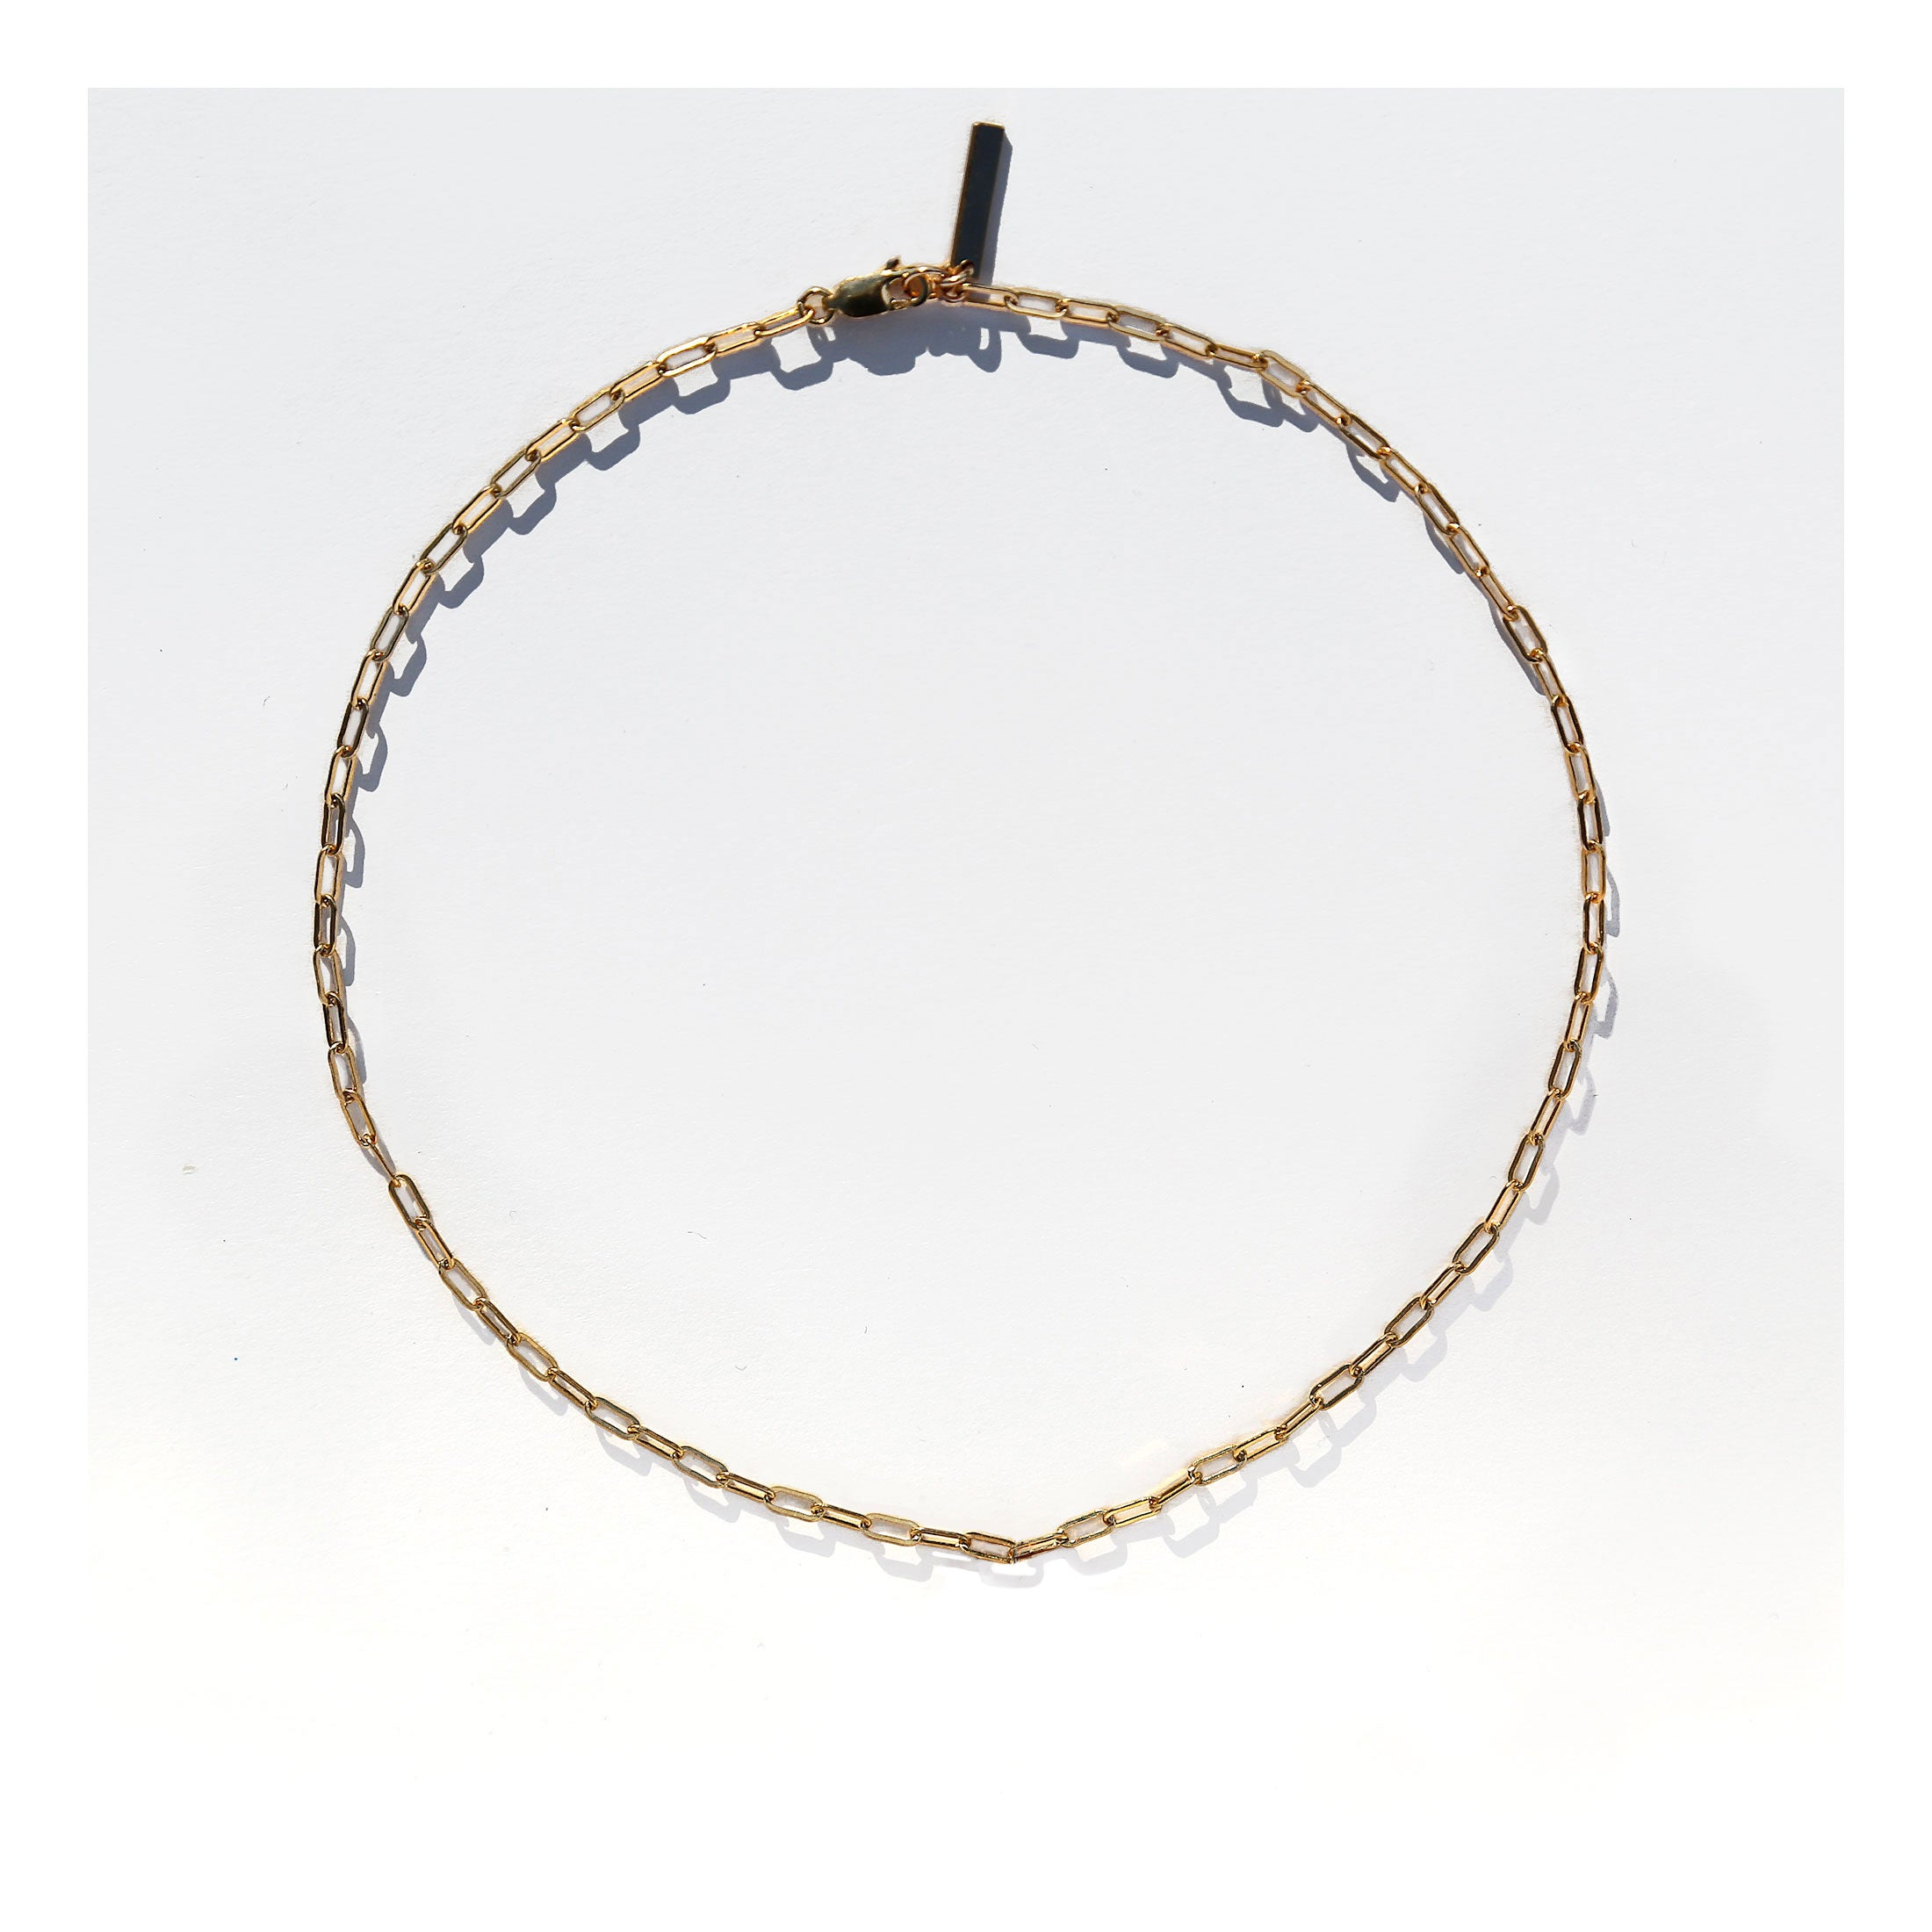 Link chain necklace made of 14k gold filled metal, with adjustable chain.